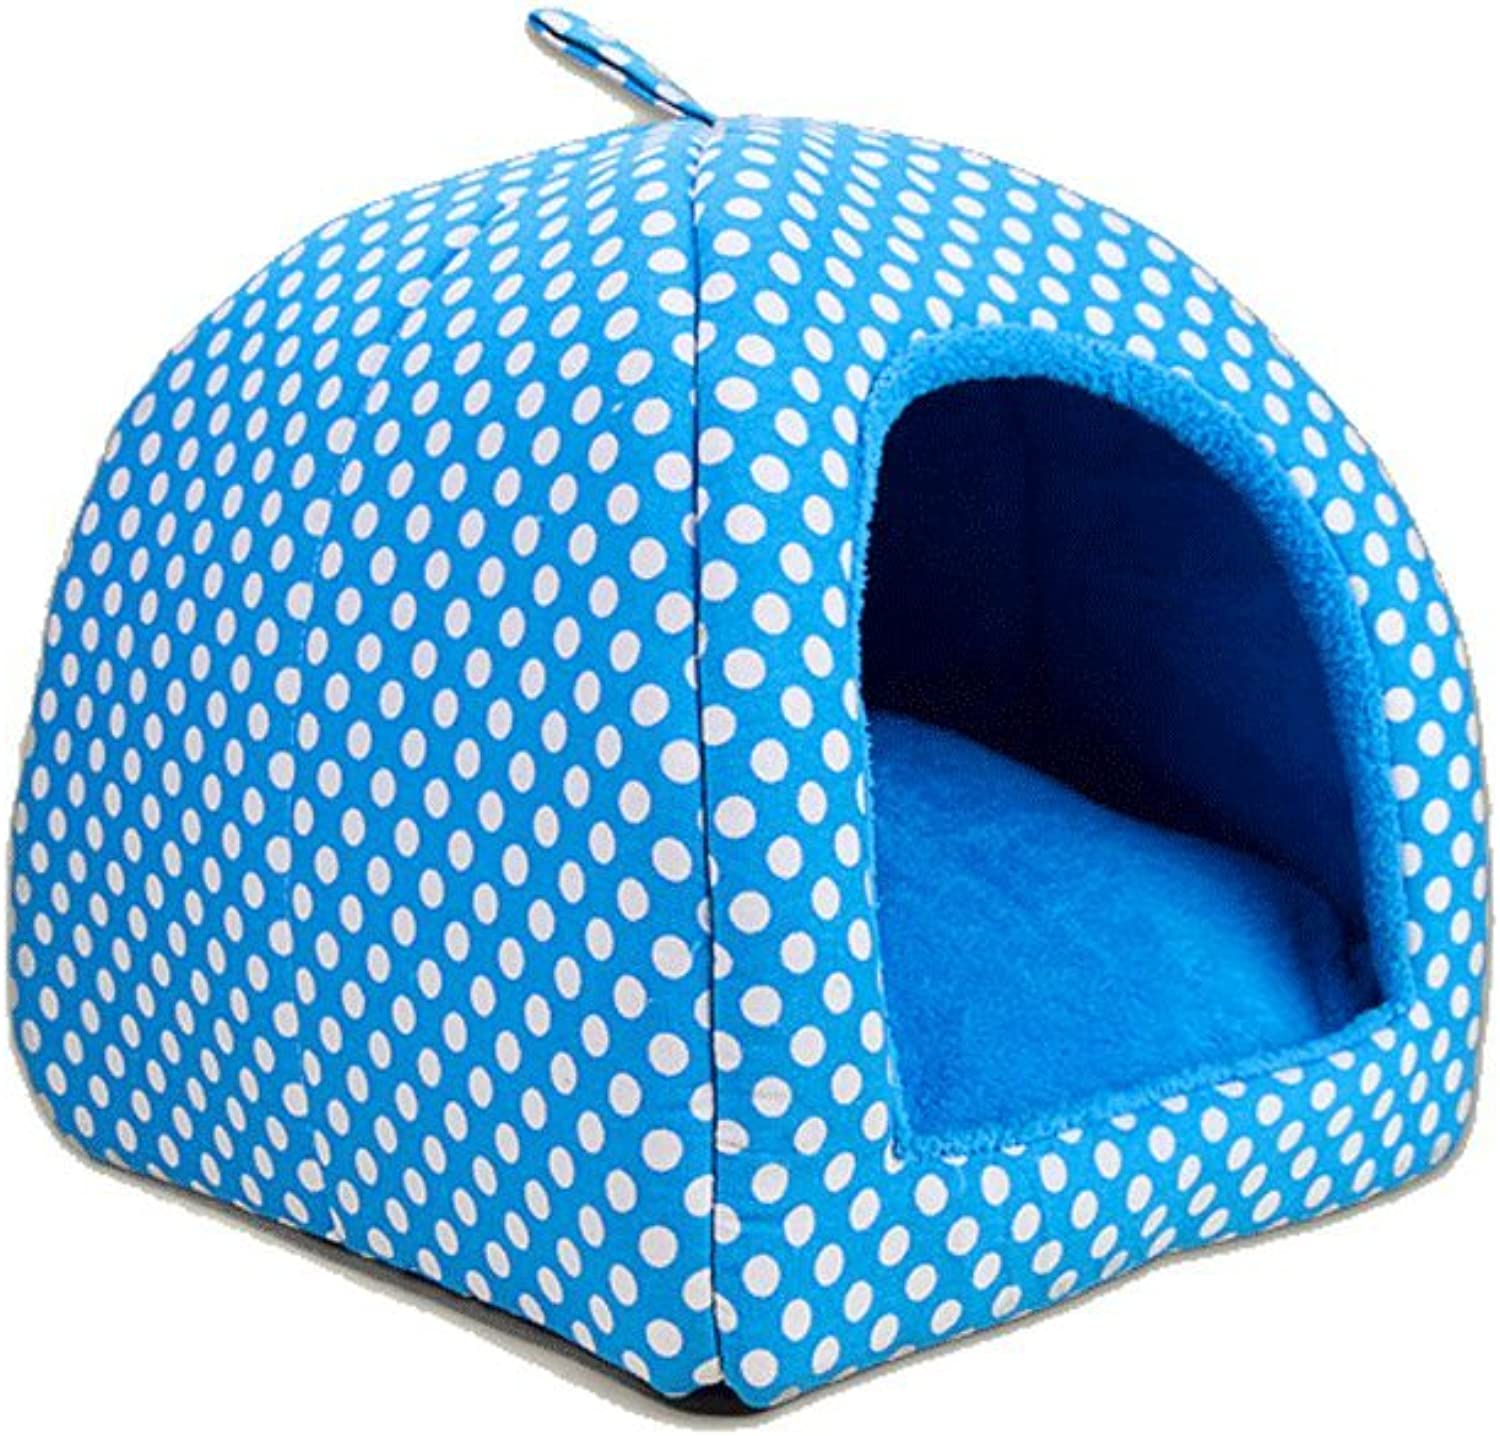 LM921 2in1 Cat Pet Bed Tunnel Fleece Tube Indoor Cushion Mat Pyramid Pad For Dog Puppy Kitten Kennel Crate Cage Shack House,Removable Small Dog Pet Nest,bluee Polka Dot Pet Tent, 3 Sizes (Size   M)